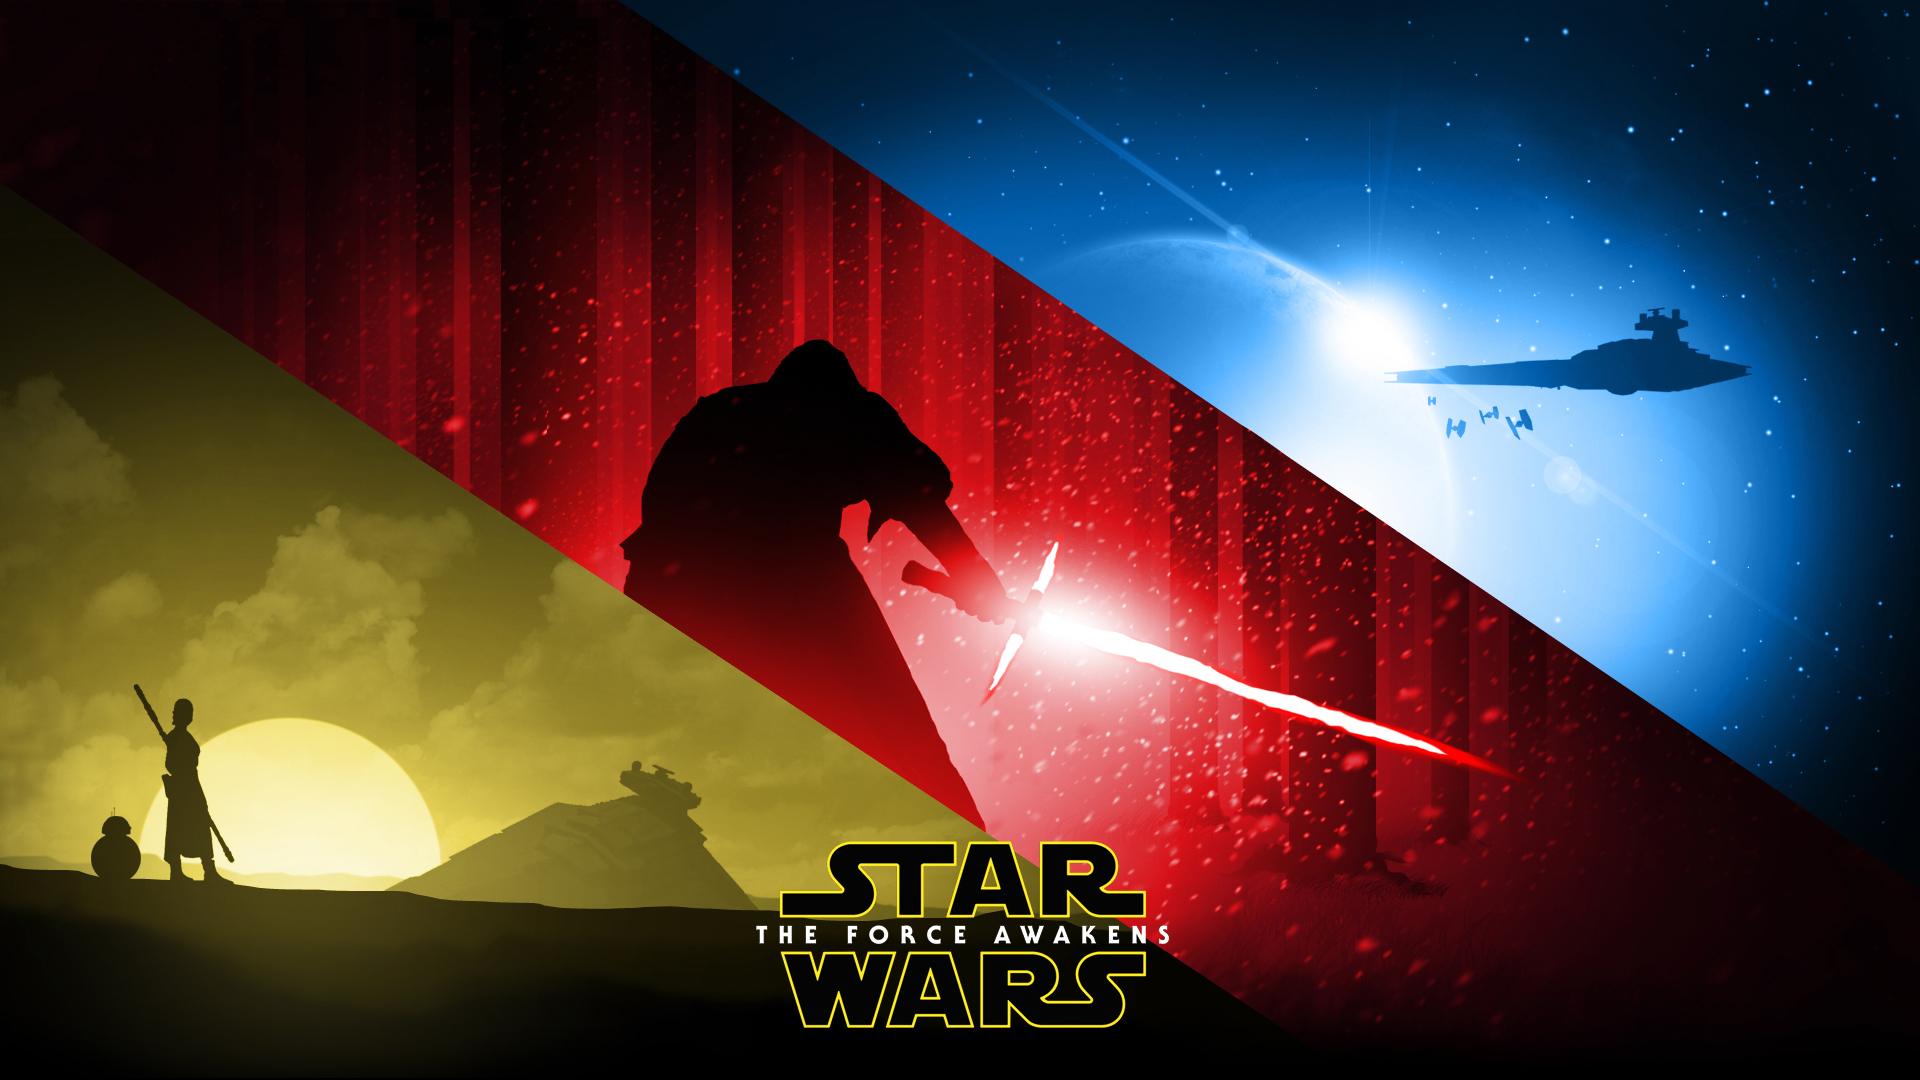 Movies Wallpaper: Star Wars The Force Awakens Wallpapers Desktop.